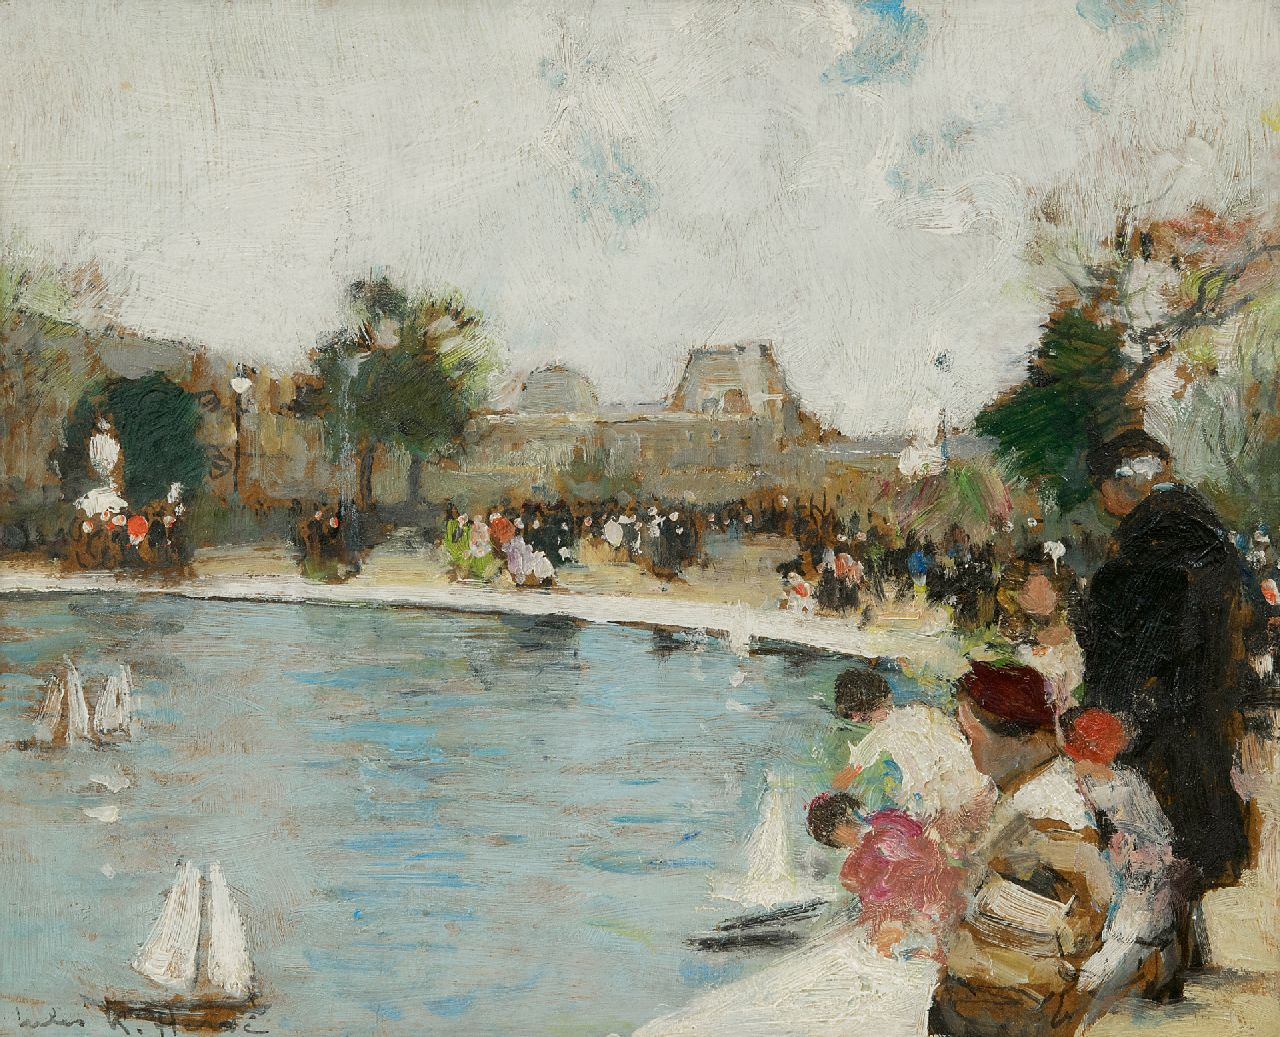 Jules René Hervé | The Garden of the Tuileries in Paris, oil on board, 22.2 x 27.2 cm, signed l.l. and on the reverse